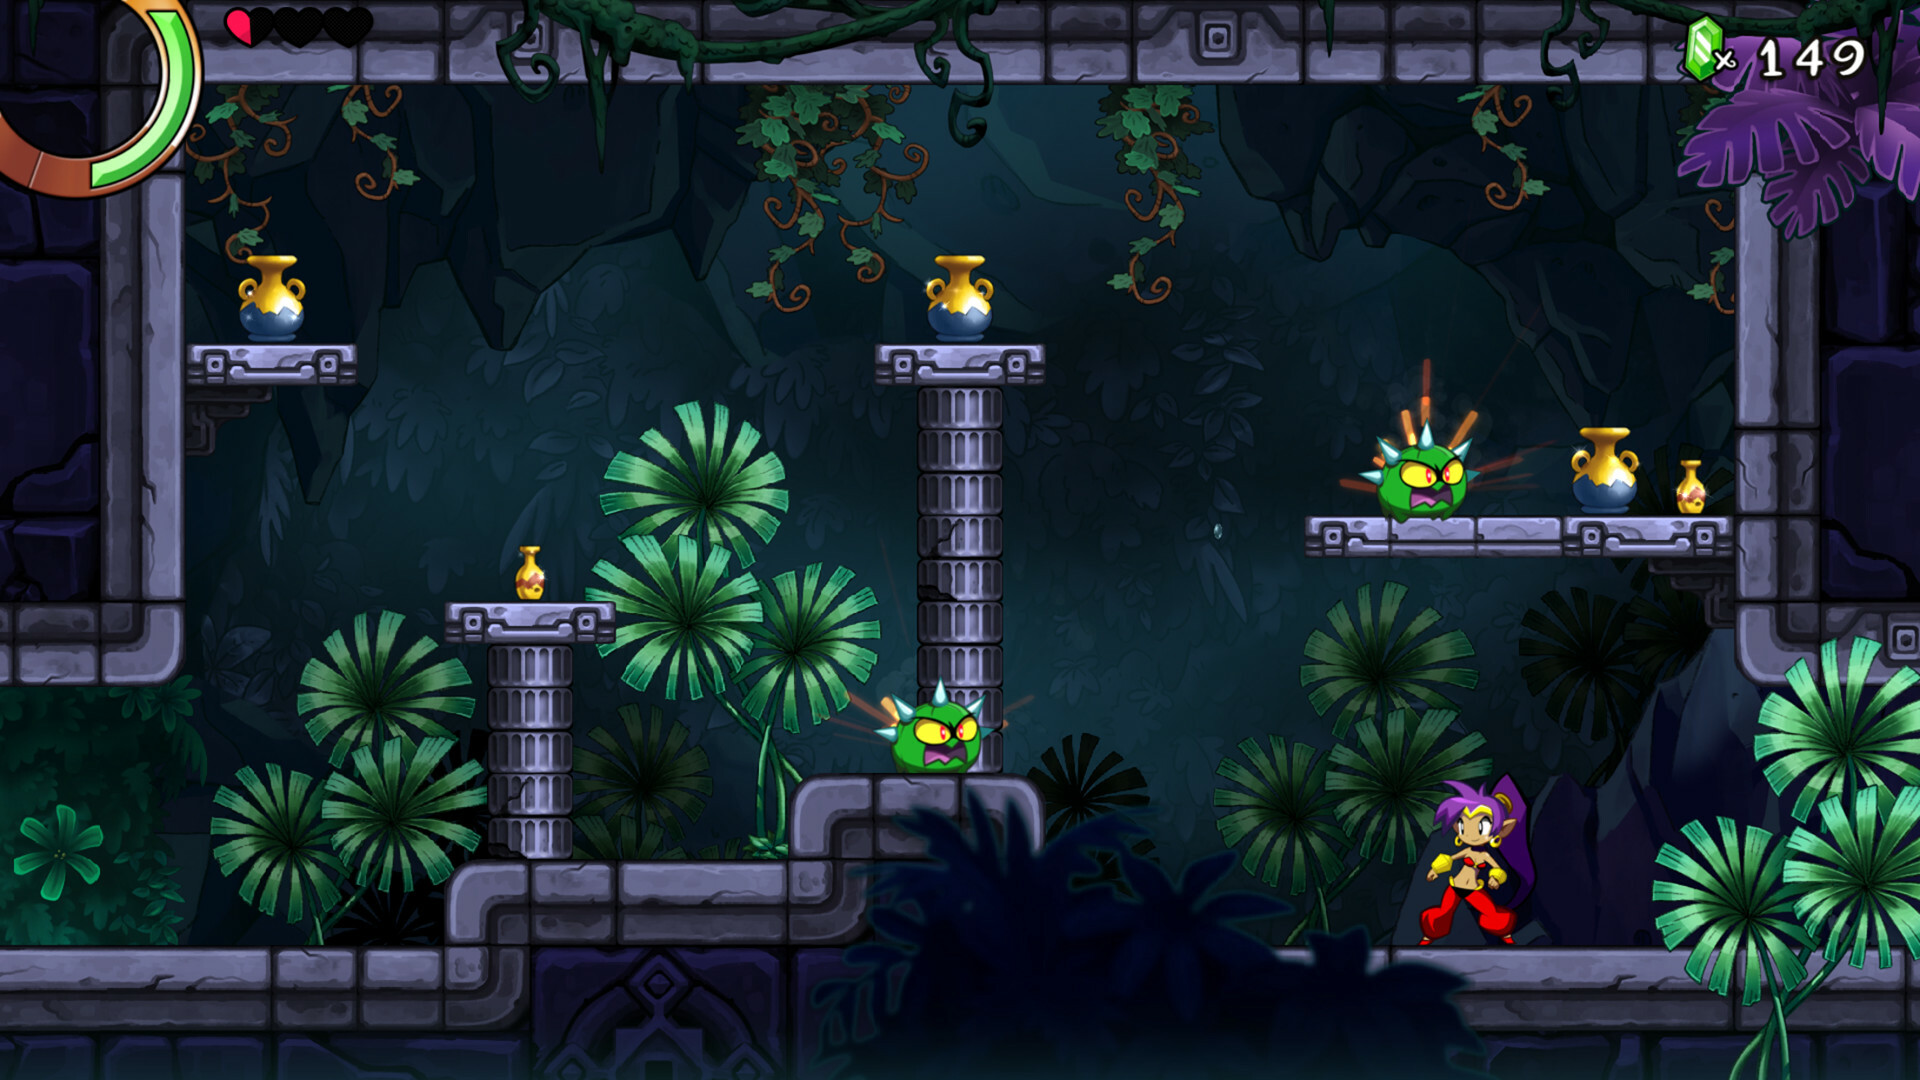 Shantae and the Seven Sirens screenshot 2